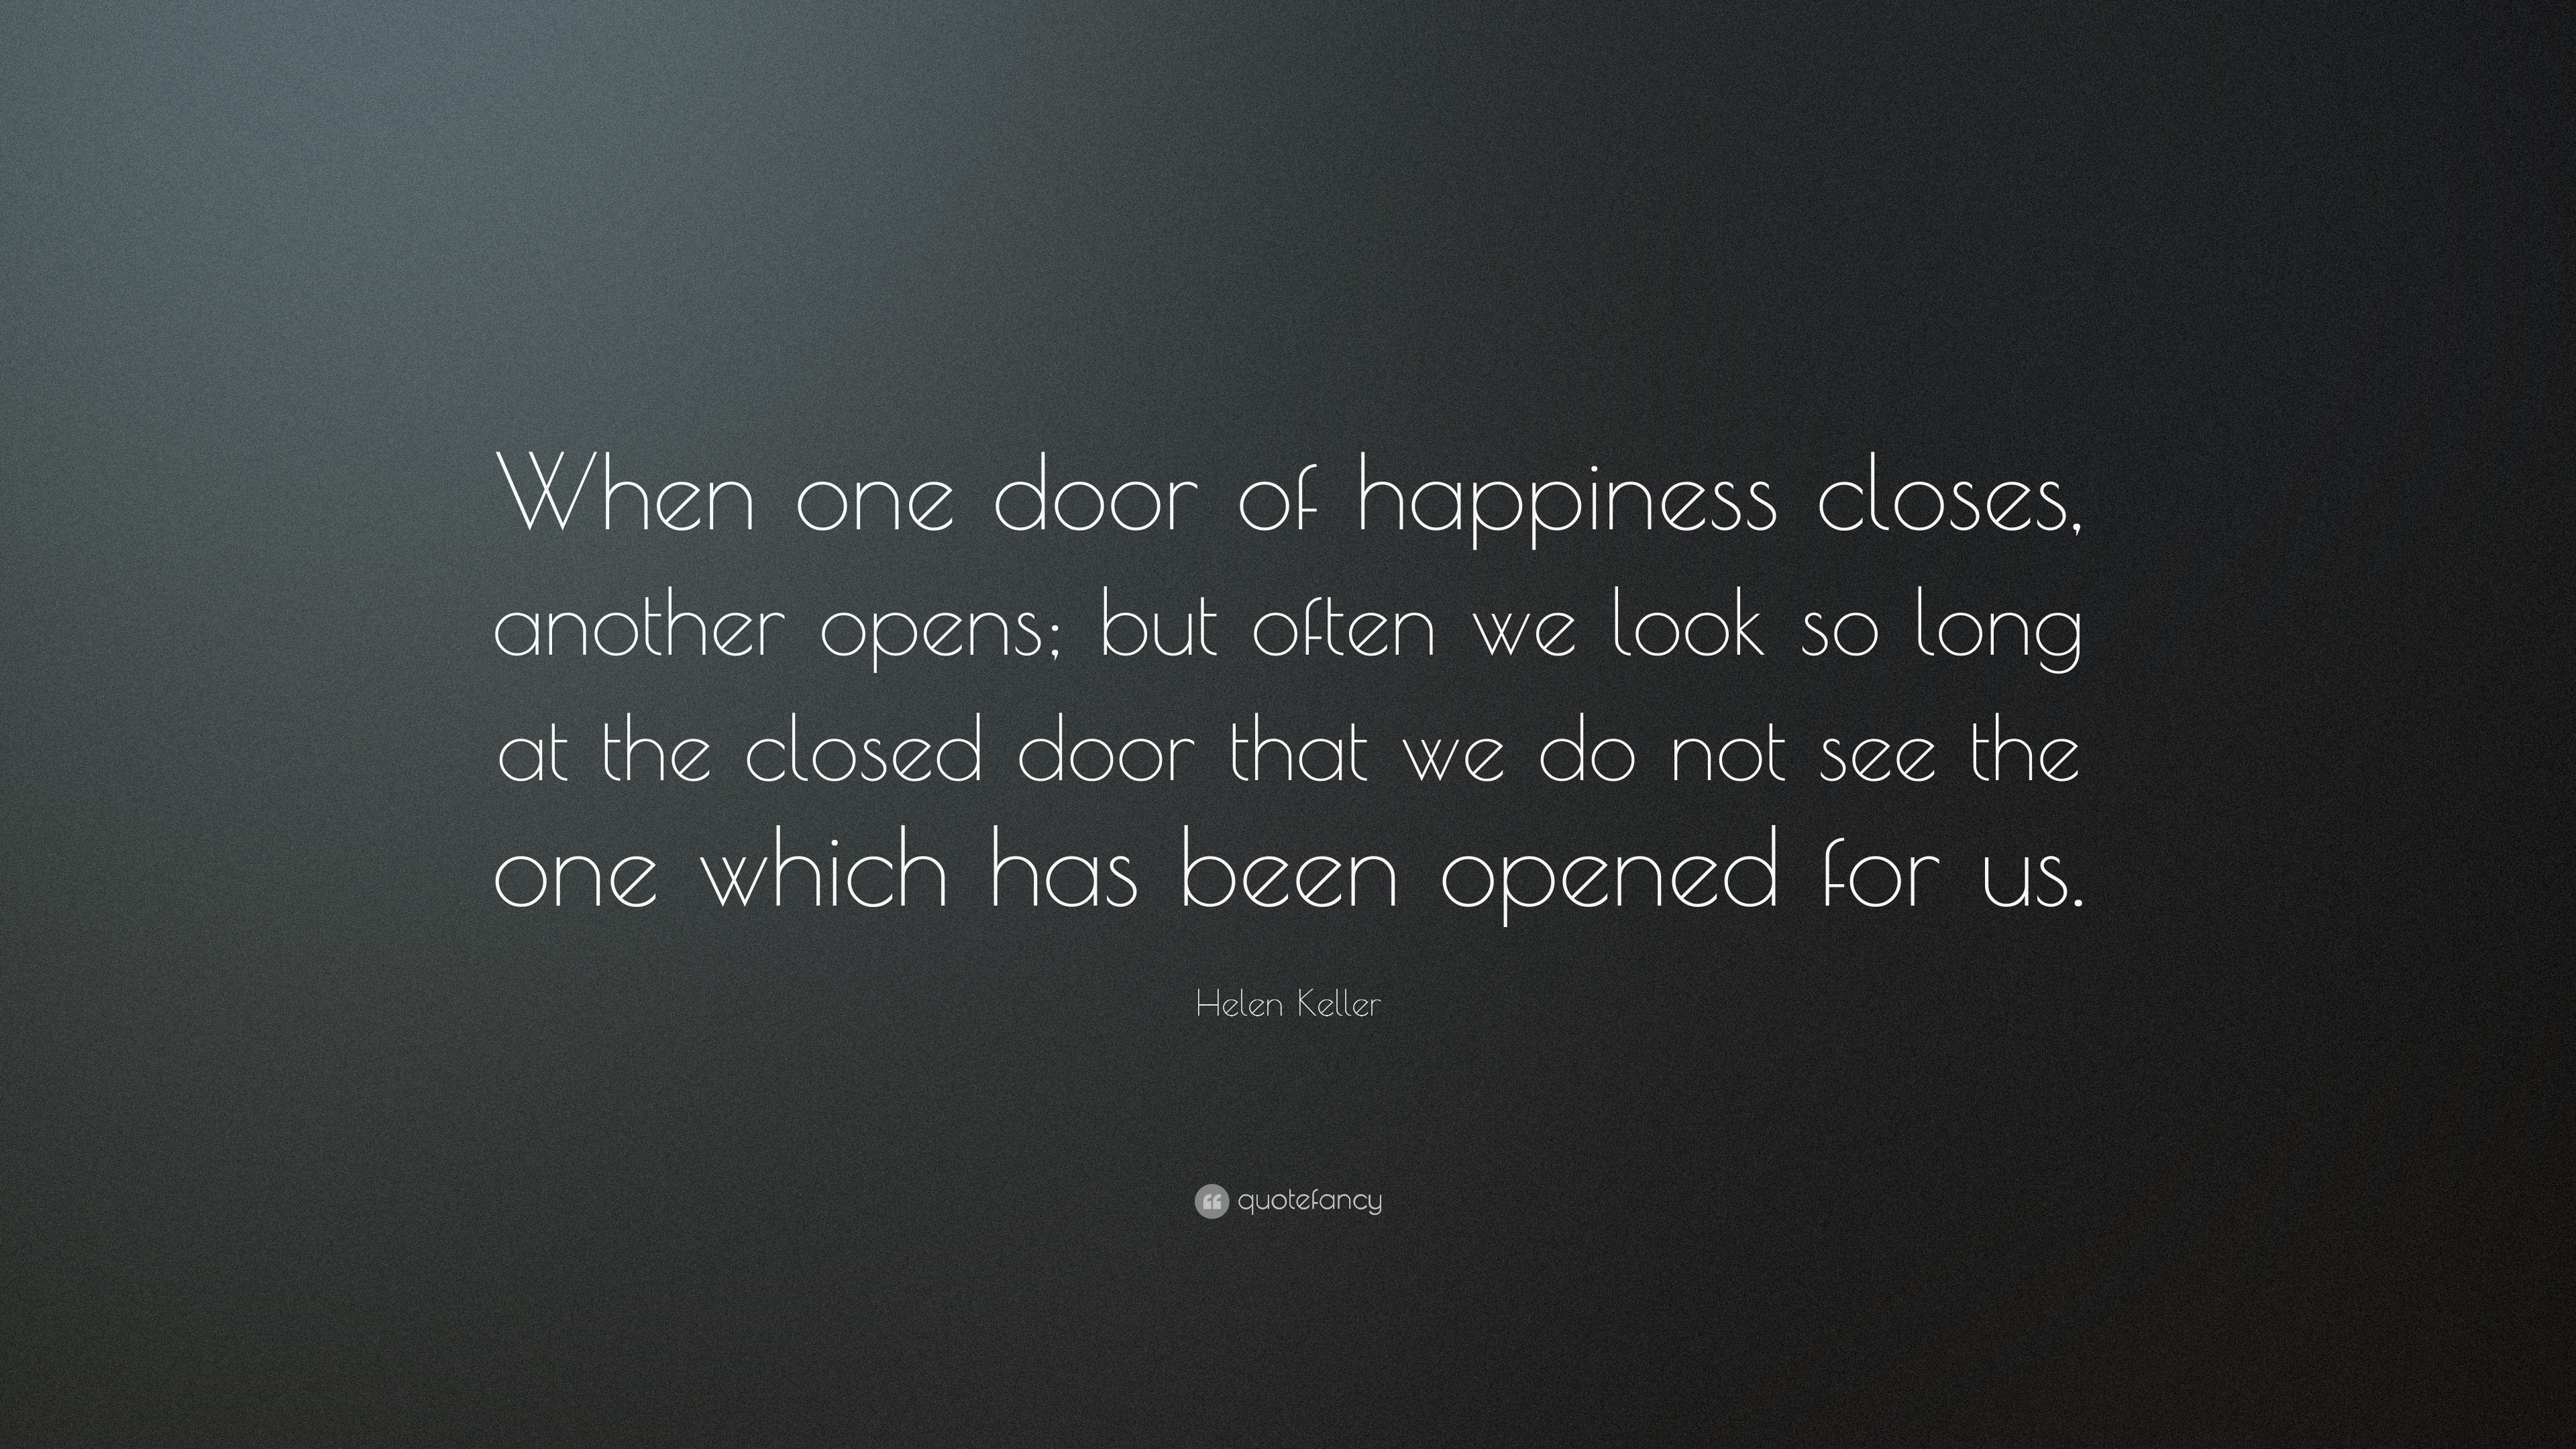 Delightful Helen Keller Quote: U201cWhen One Door Of Happiness Closes, Another Opens; But